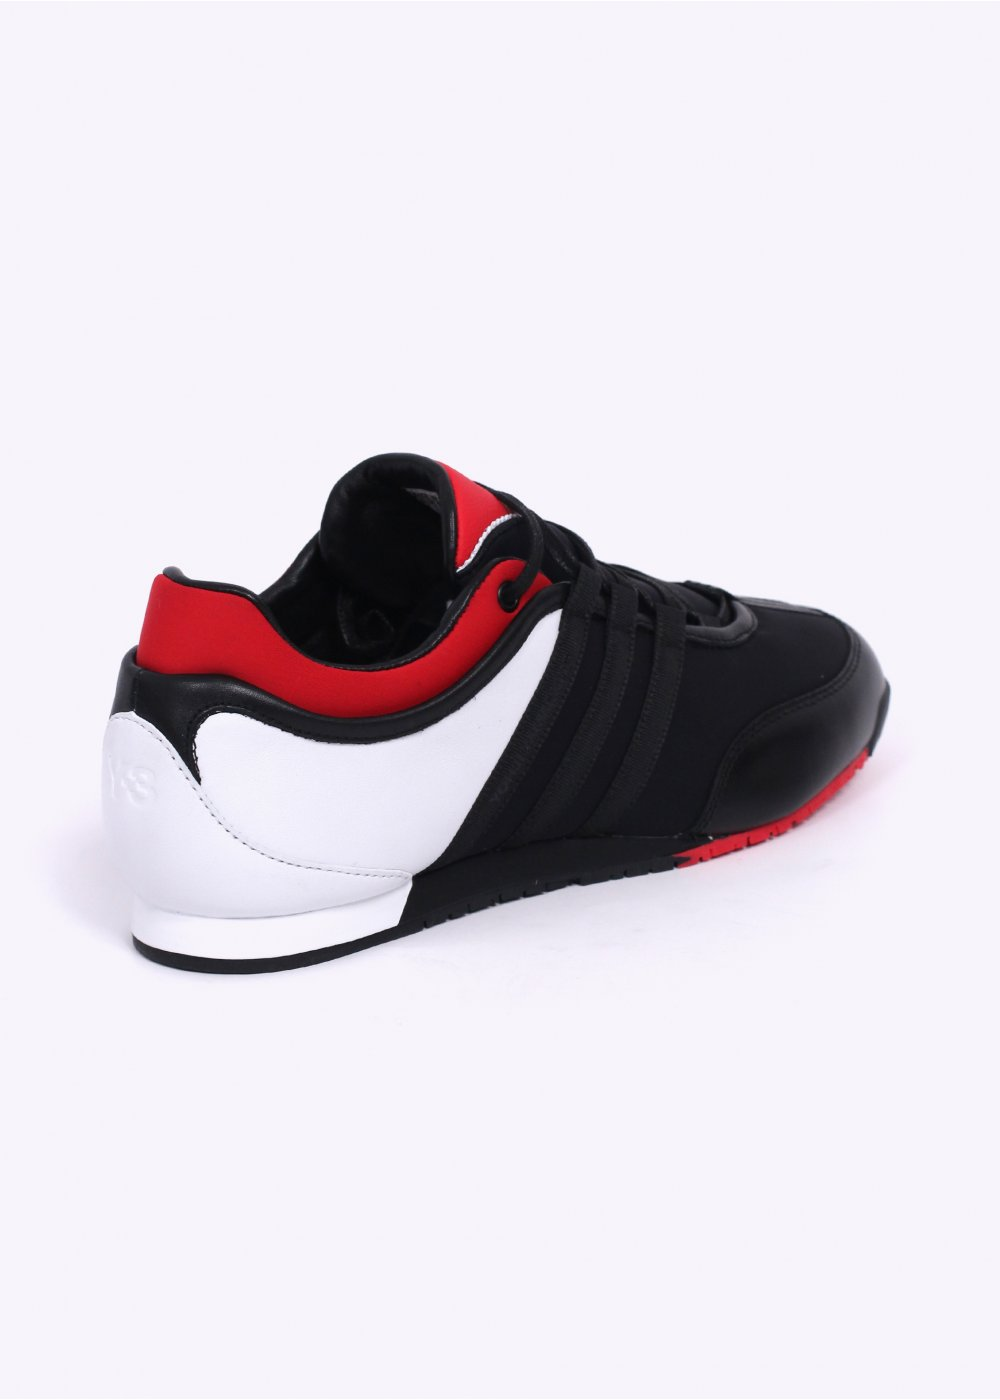 adidas y 3 boxing trainers black red. Black Bedroom Furniture Sets. Home Design Ideas